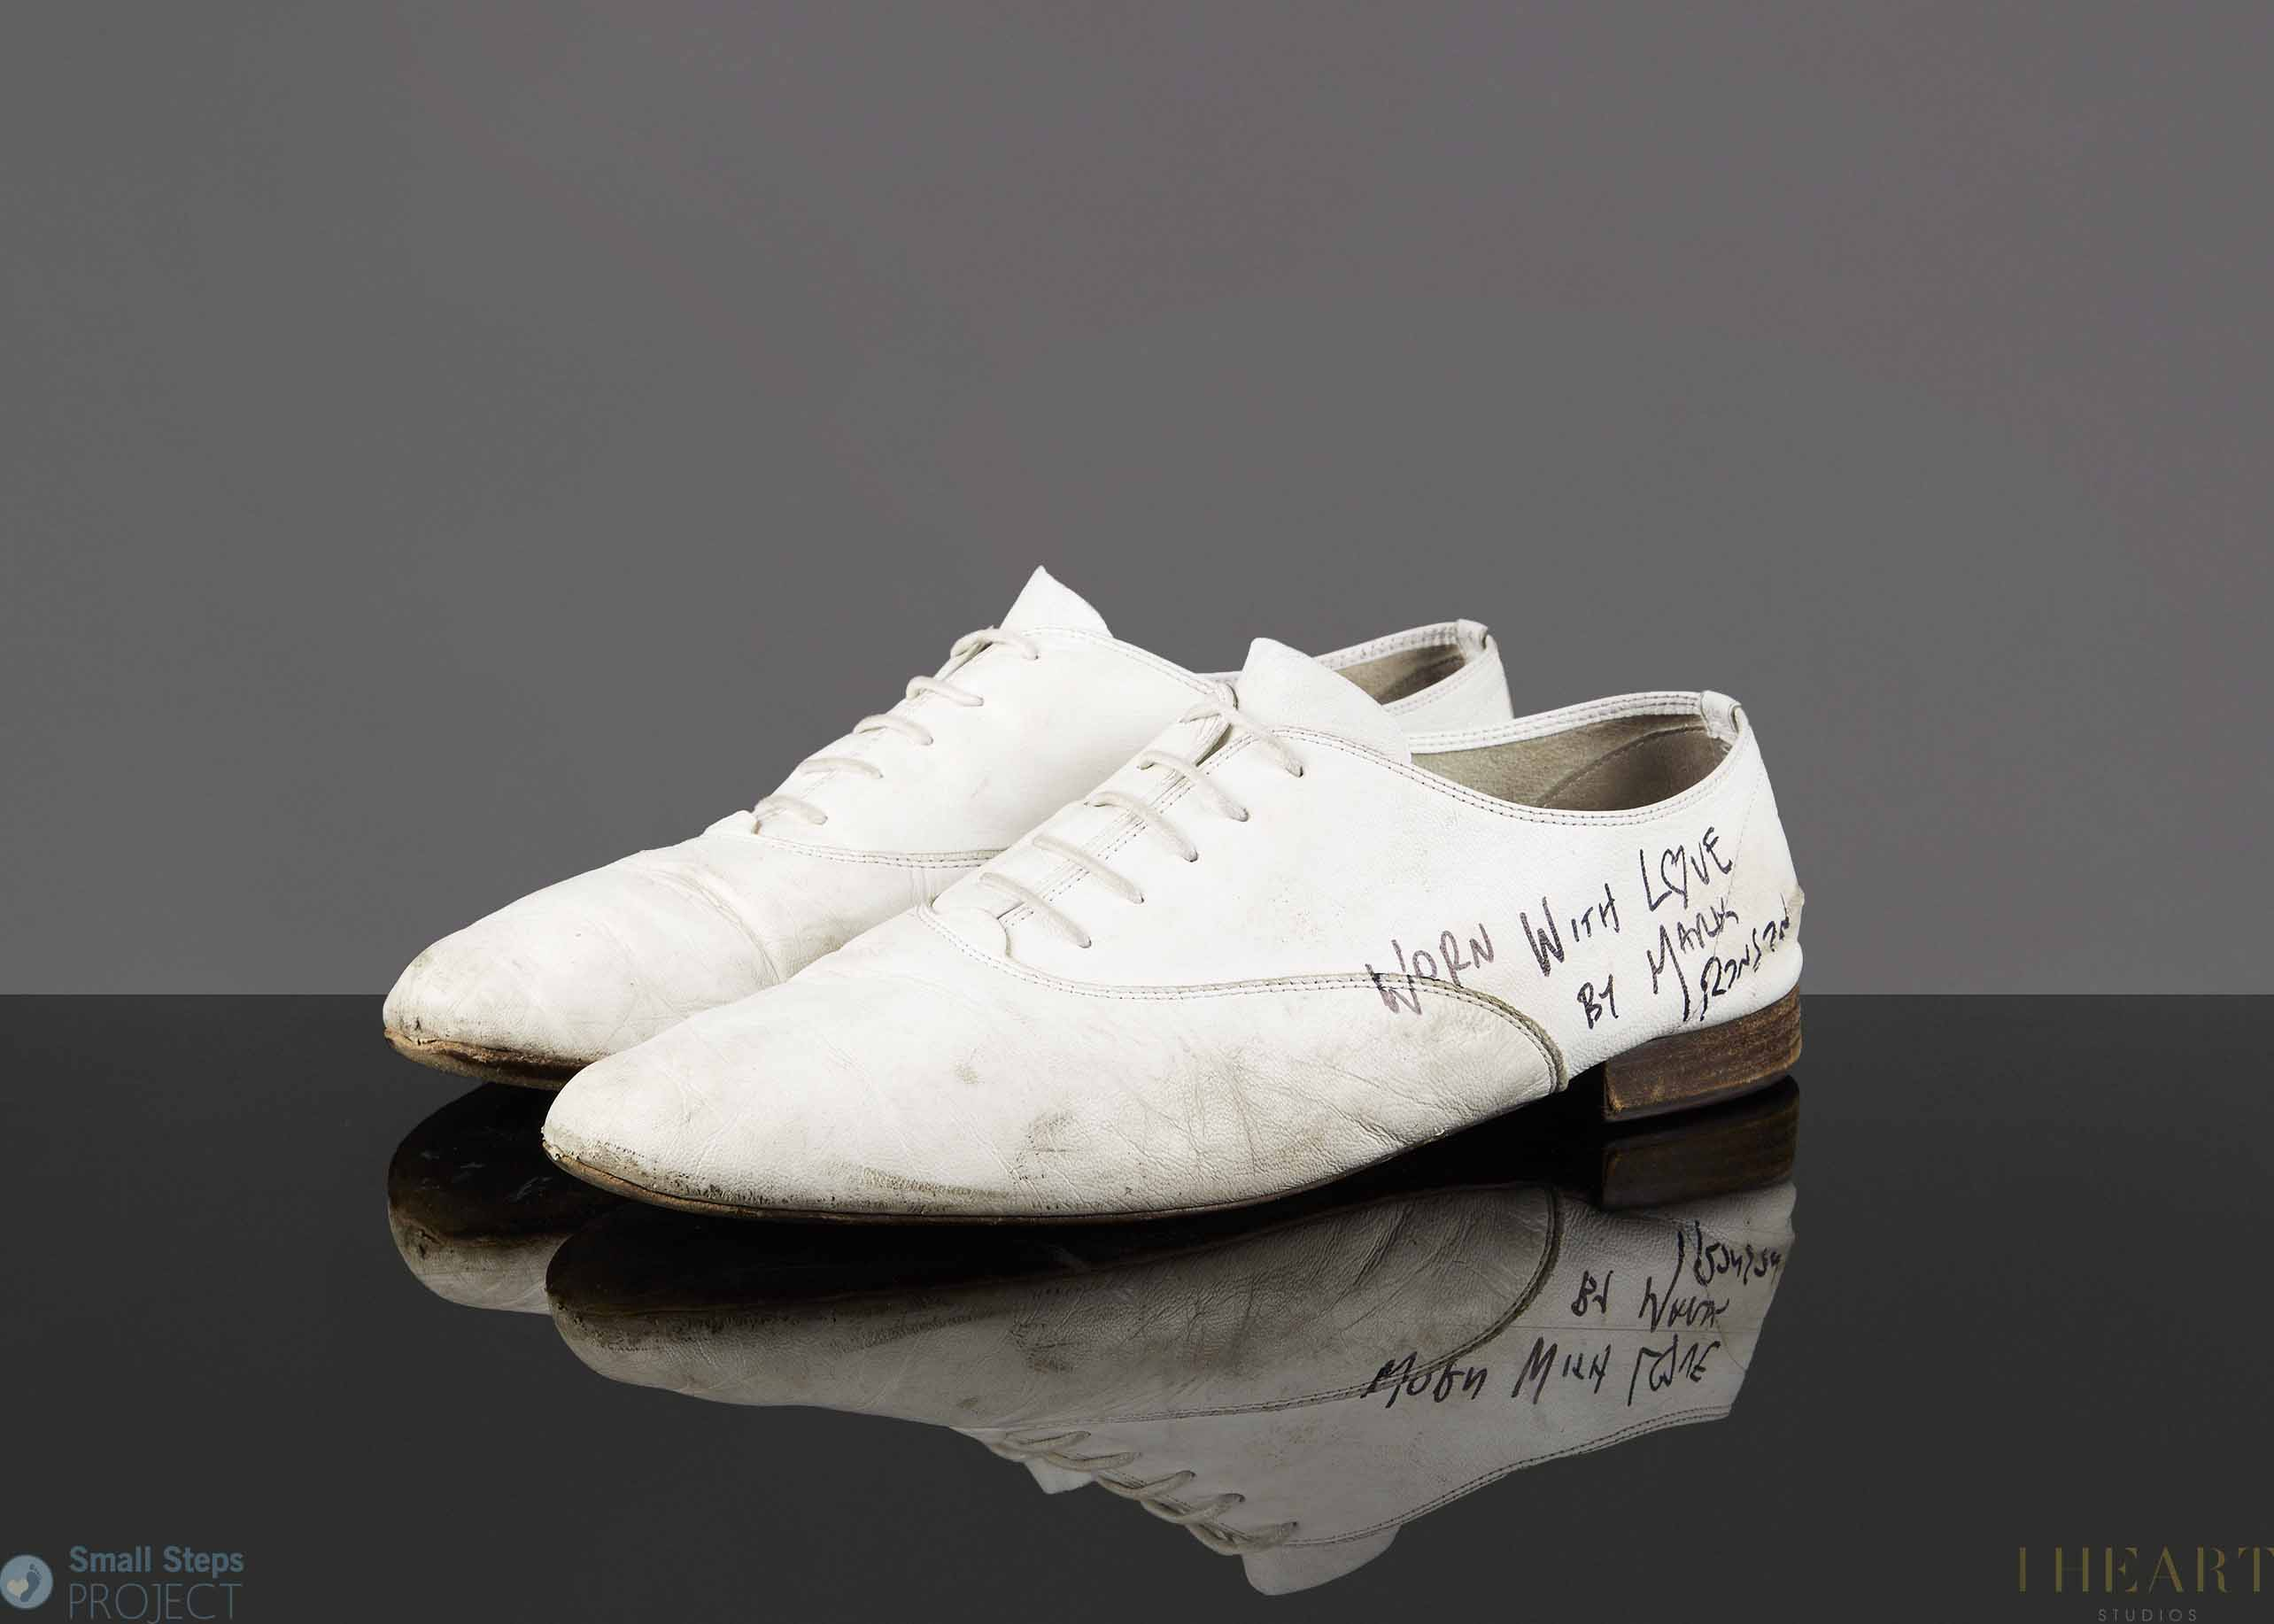 Mark wore these shoes during numerous band and DJ gigs